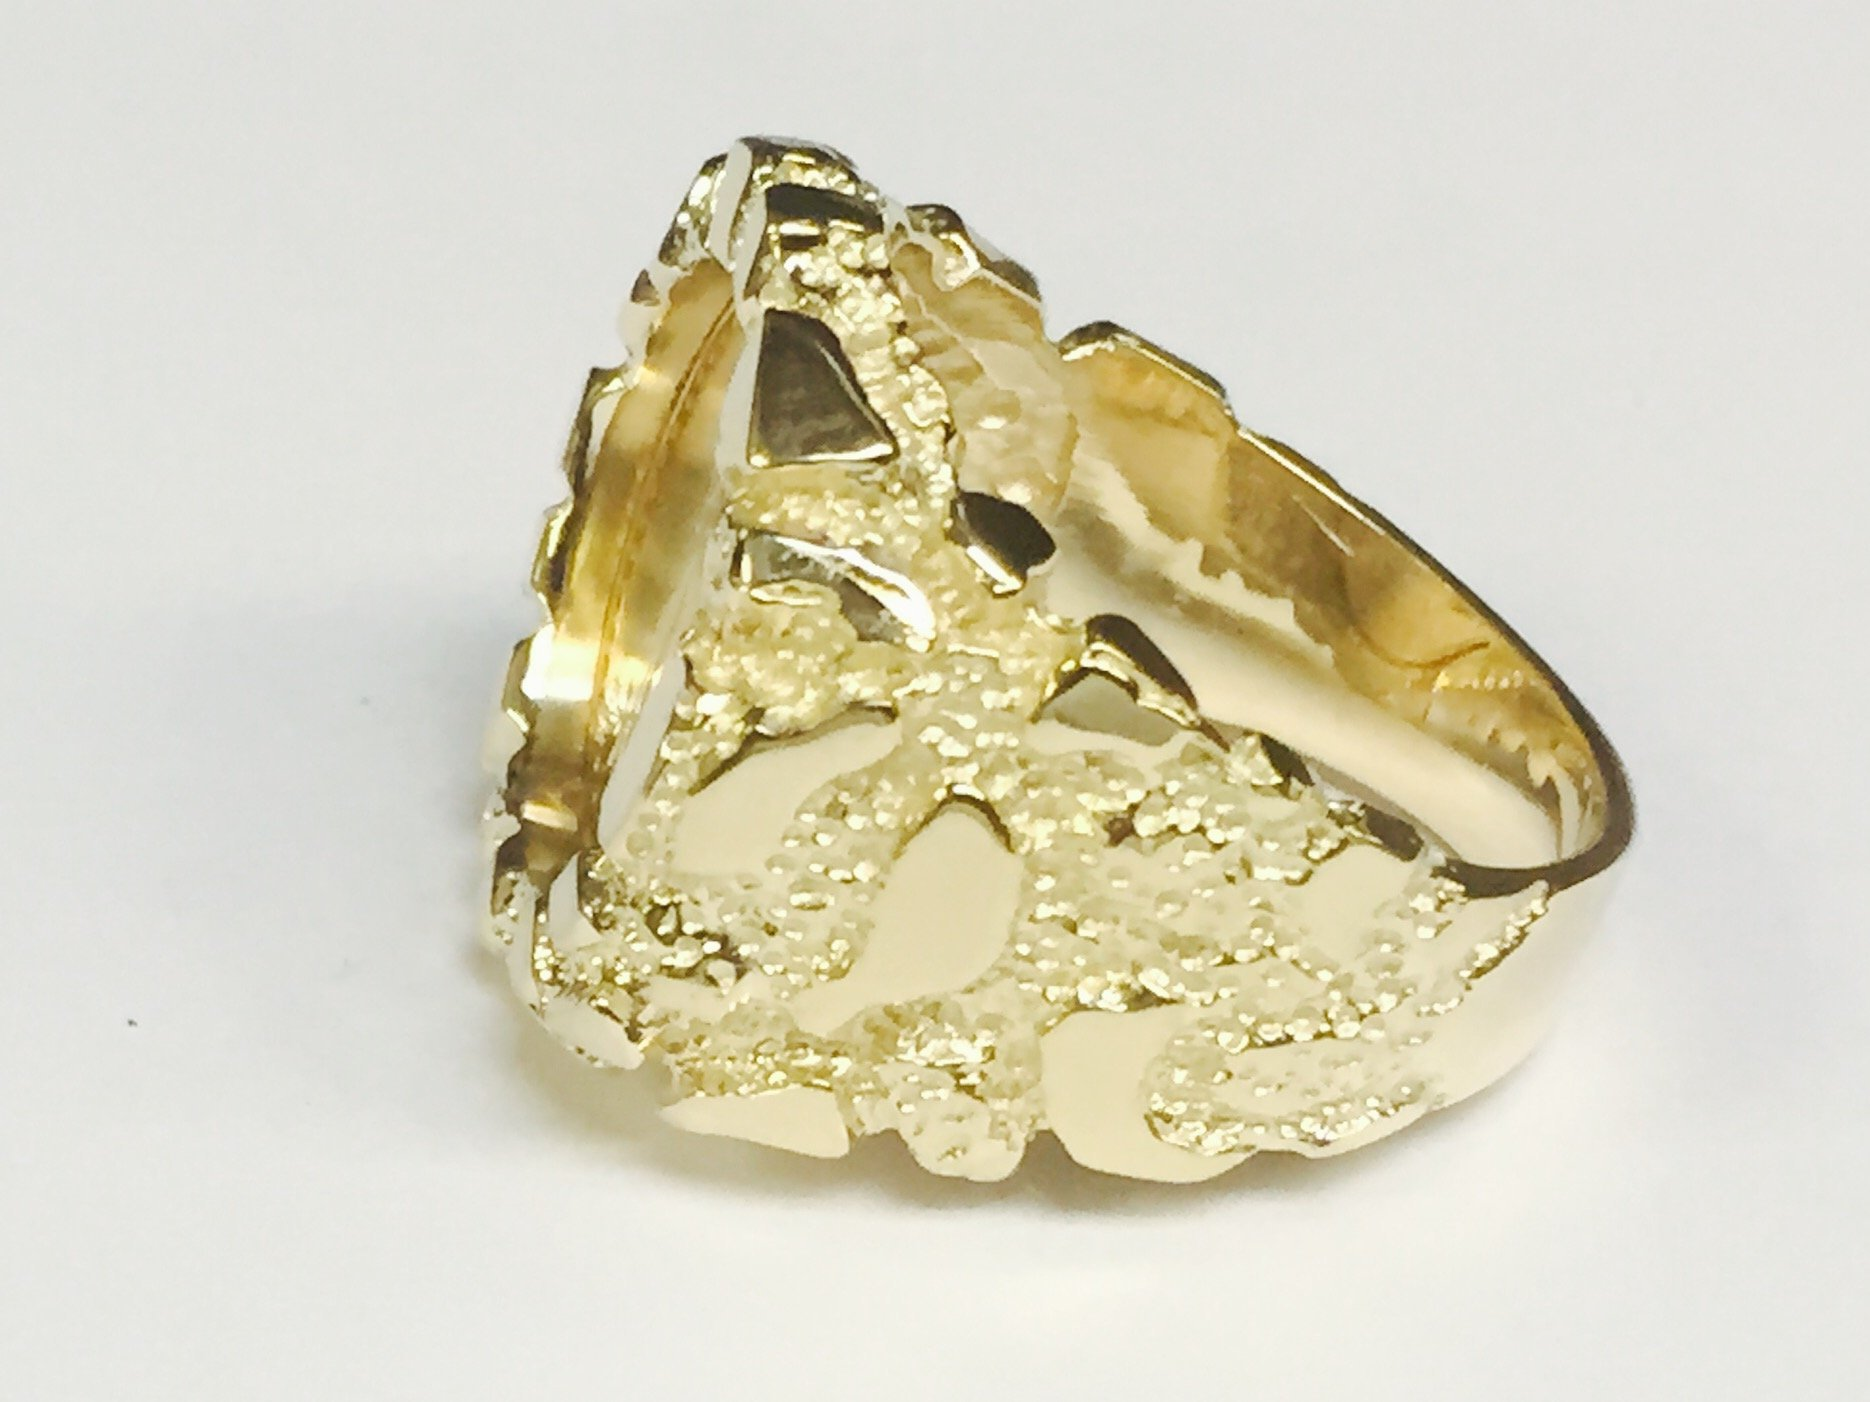 14K Gold Men'S 21 Mm Nugget Coin Ring With A 22 K 1/10 Oz American Eagle Coin - Random Year Coin by TEX (Image #3)